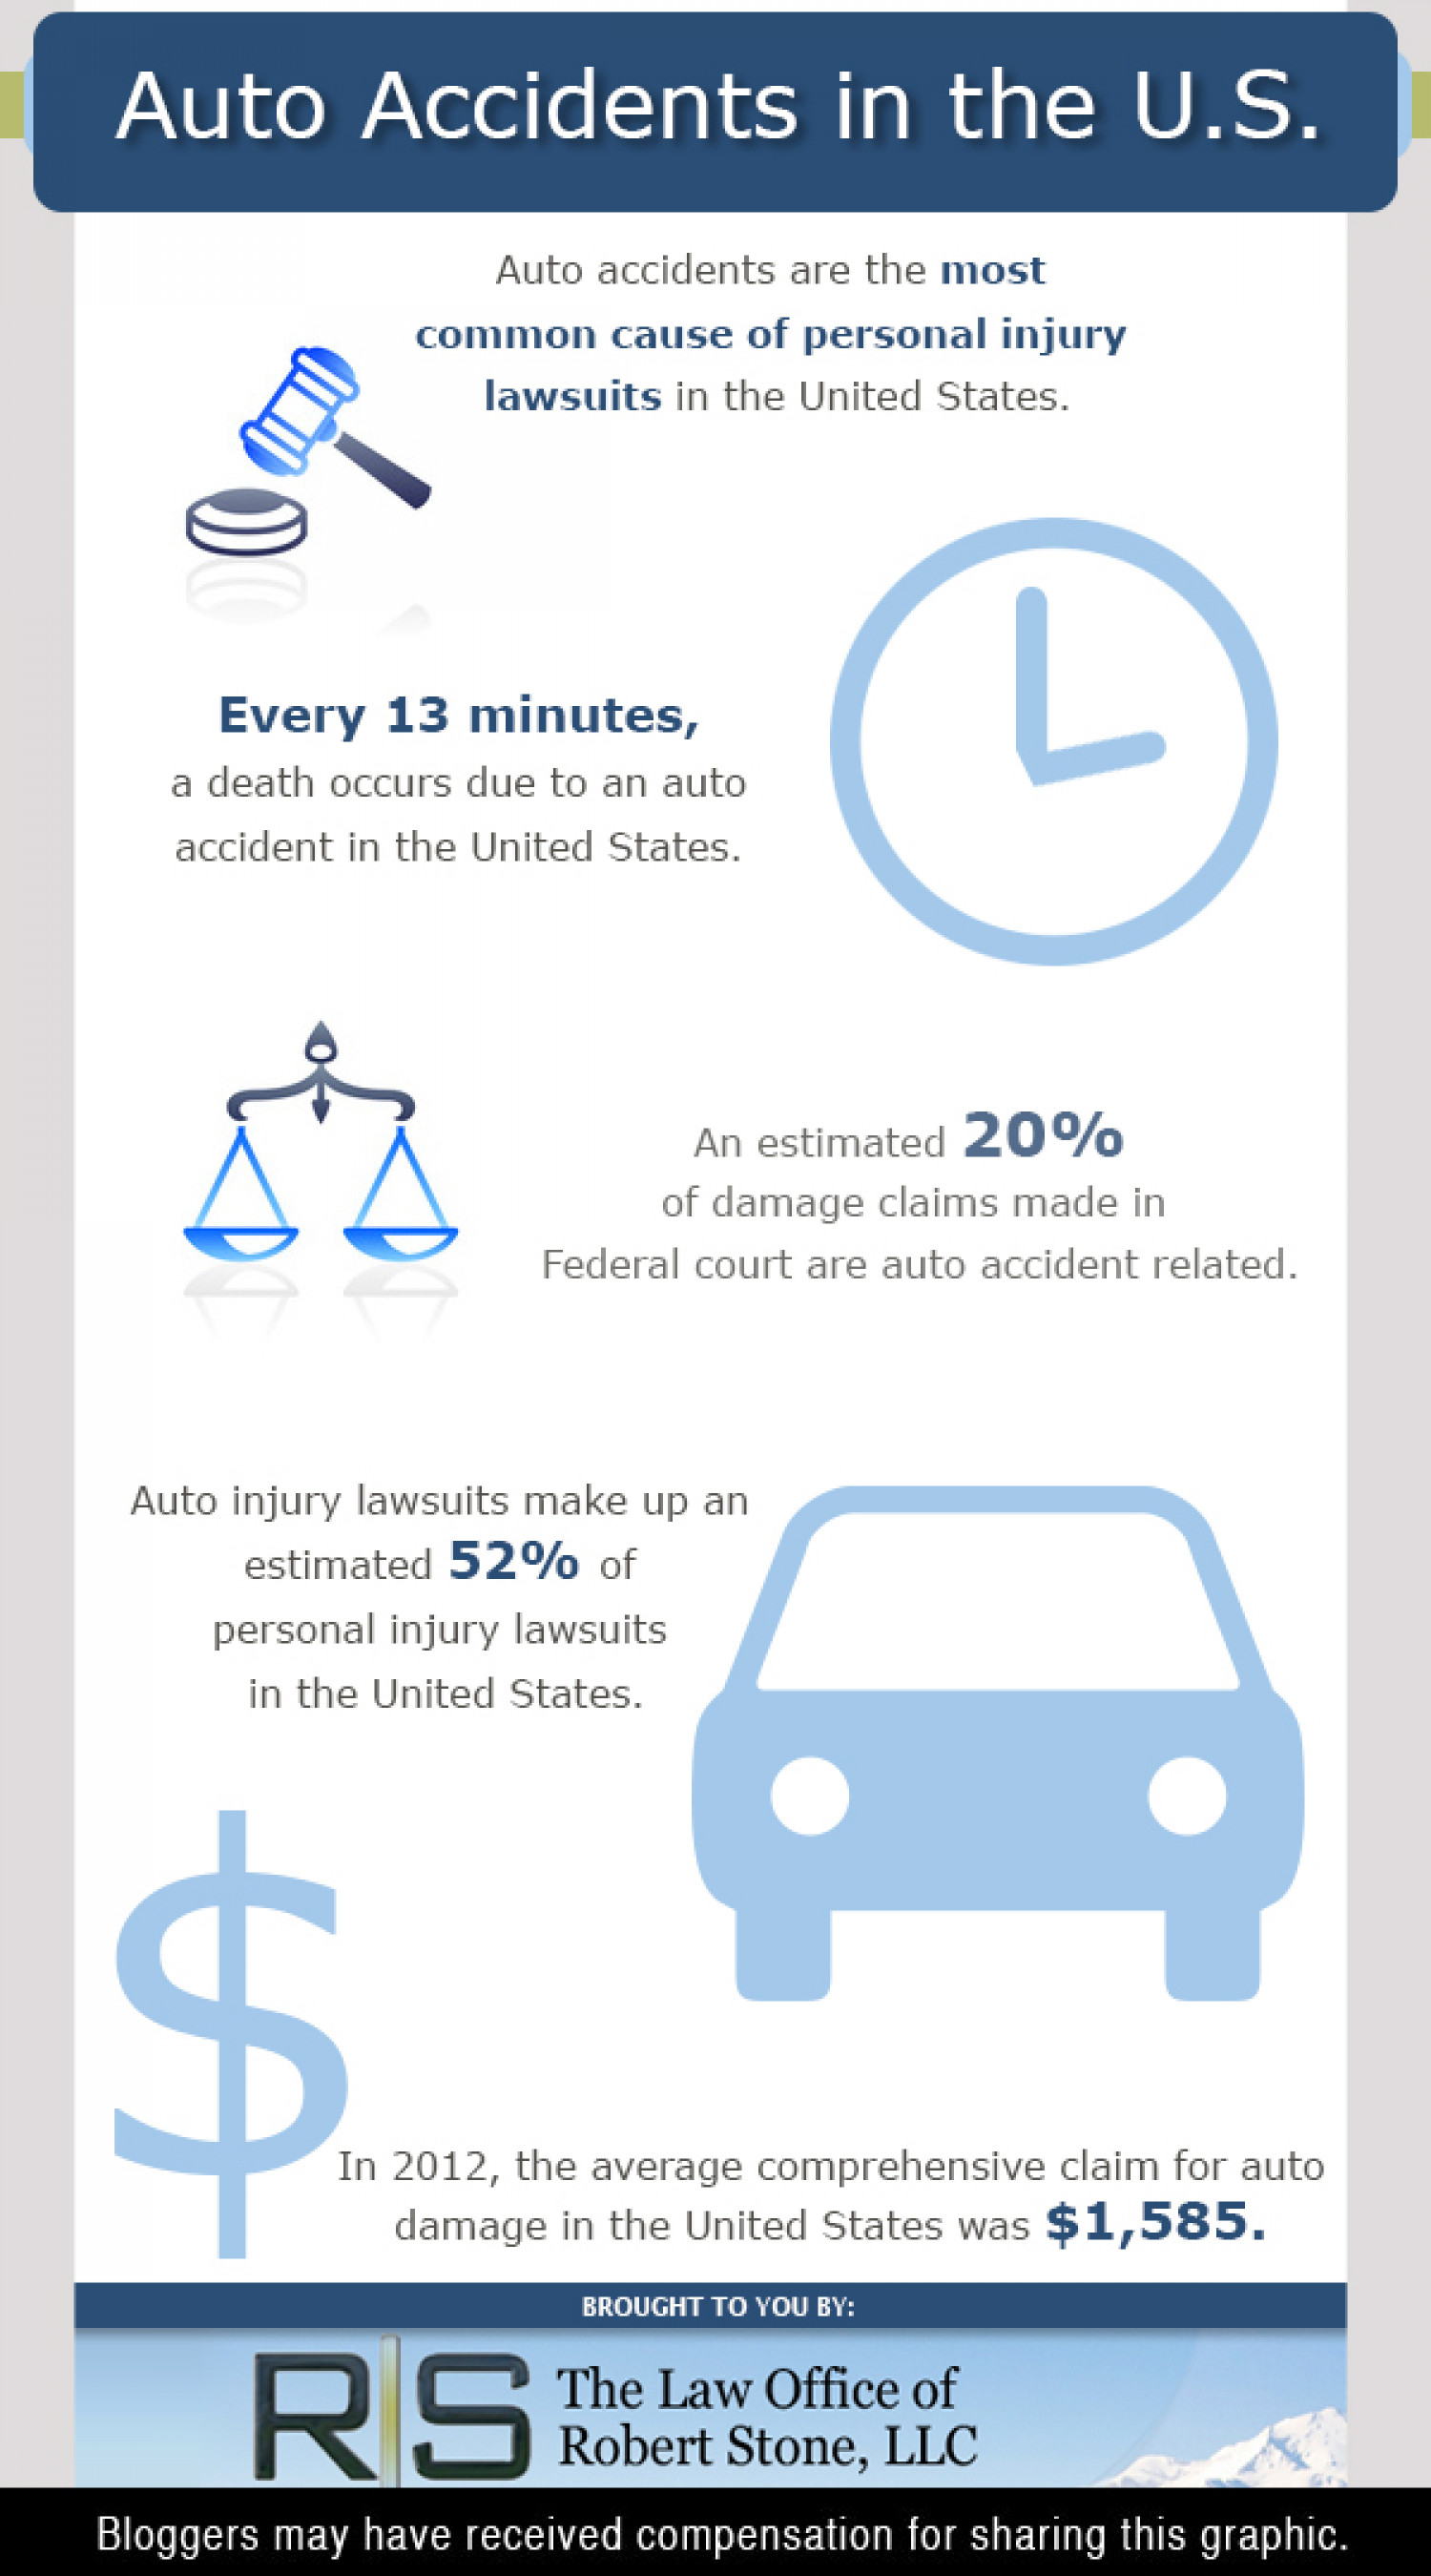 Auto Accidents in the U.S. Infographic